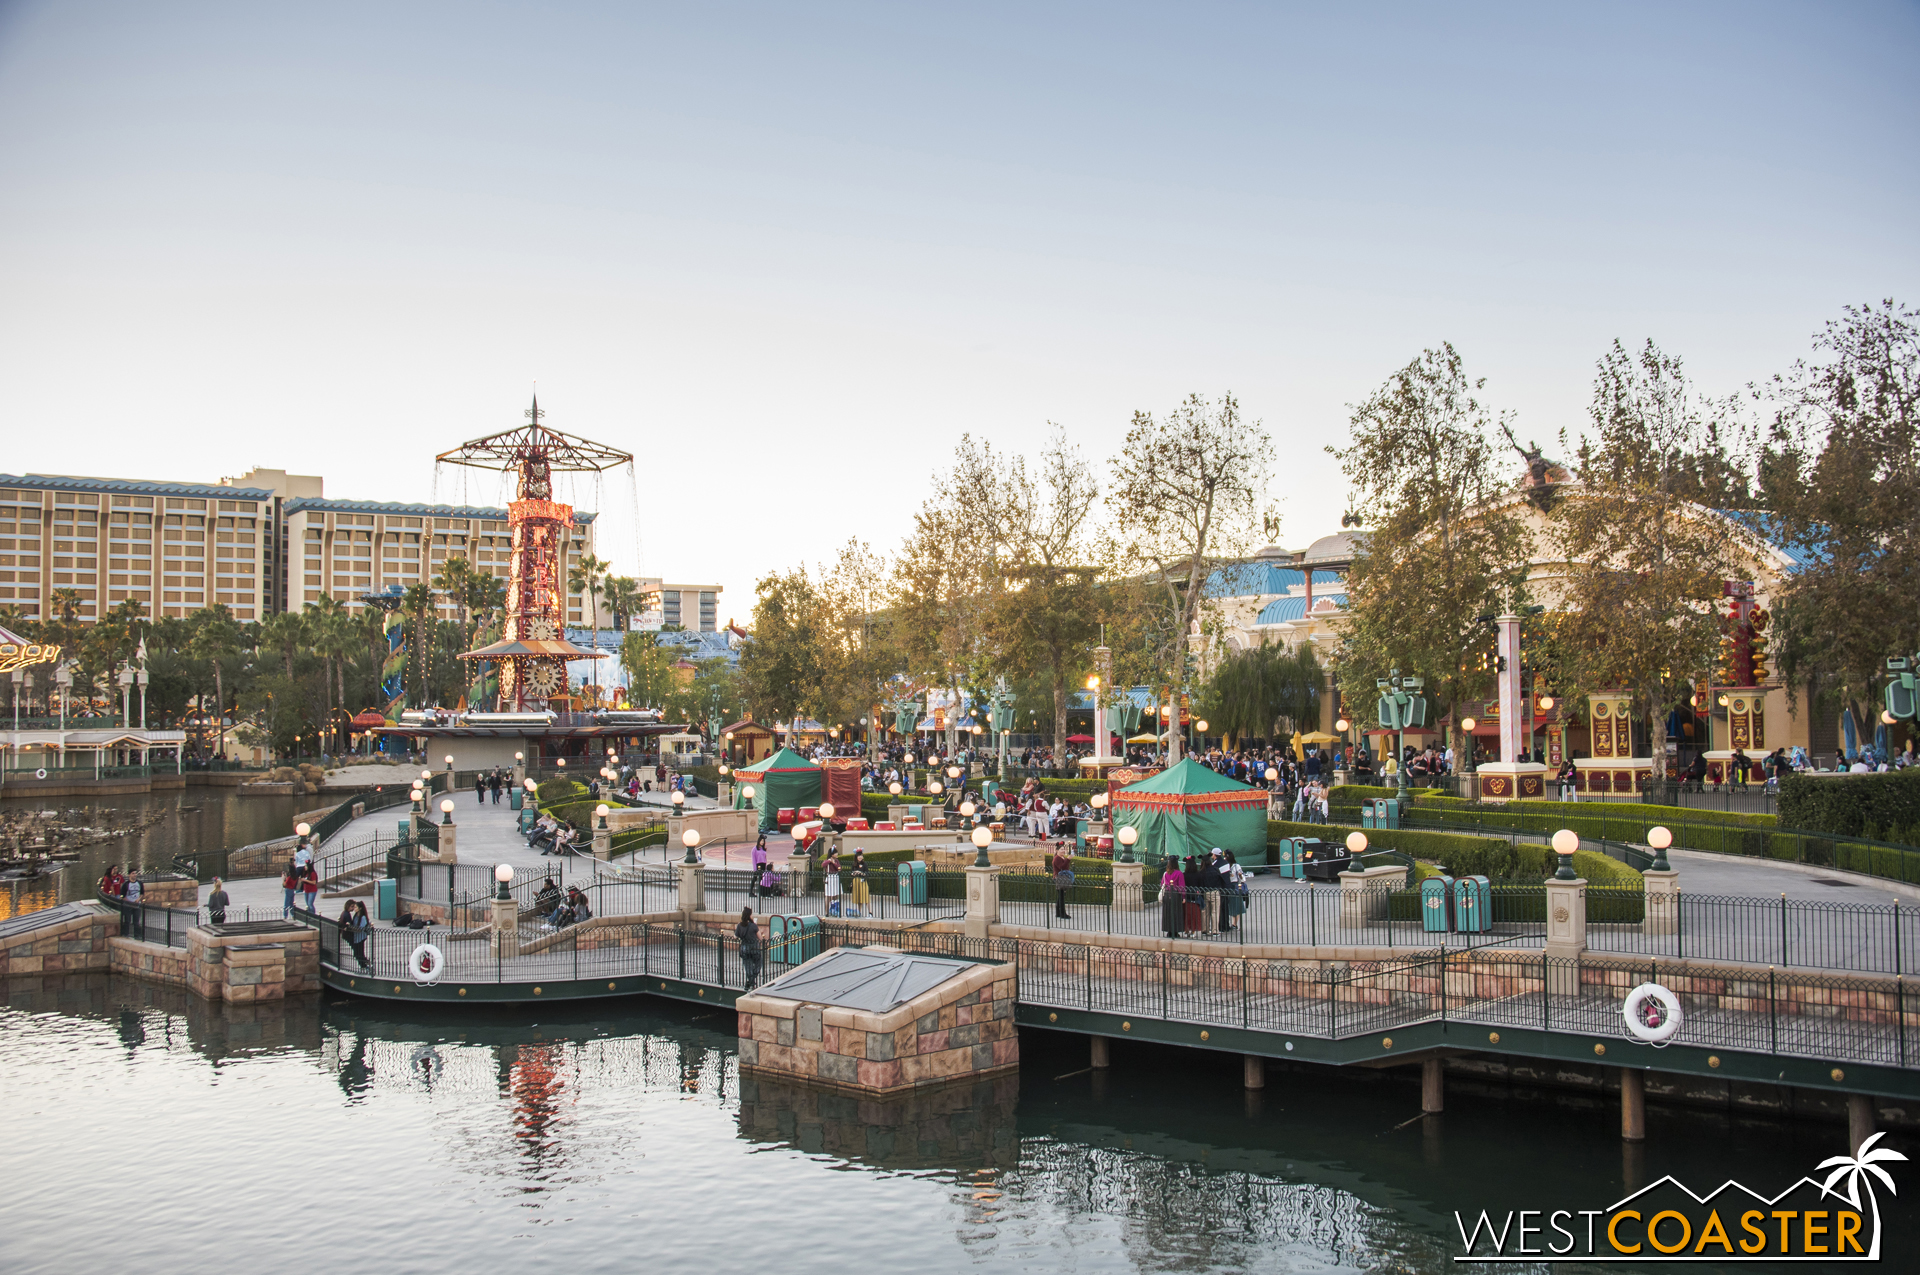 """As you can see, the festival has its own nice little niche in this part of Paradise Pier. On a related note, this is the area that will be renamed to """"Paradise Park"""" as its own themed land once the Pixar Pier secession is complete."""